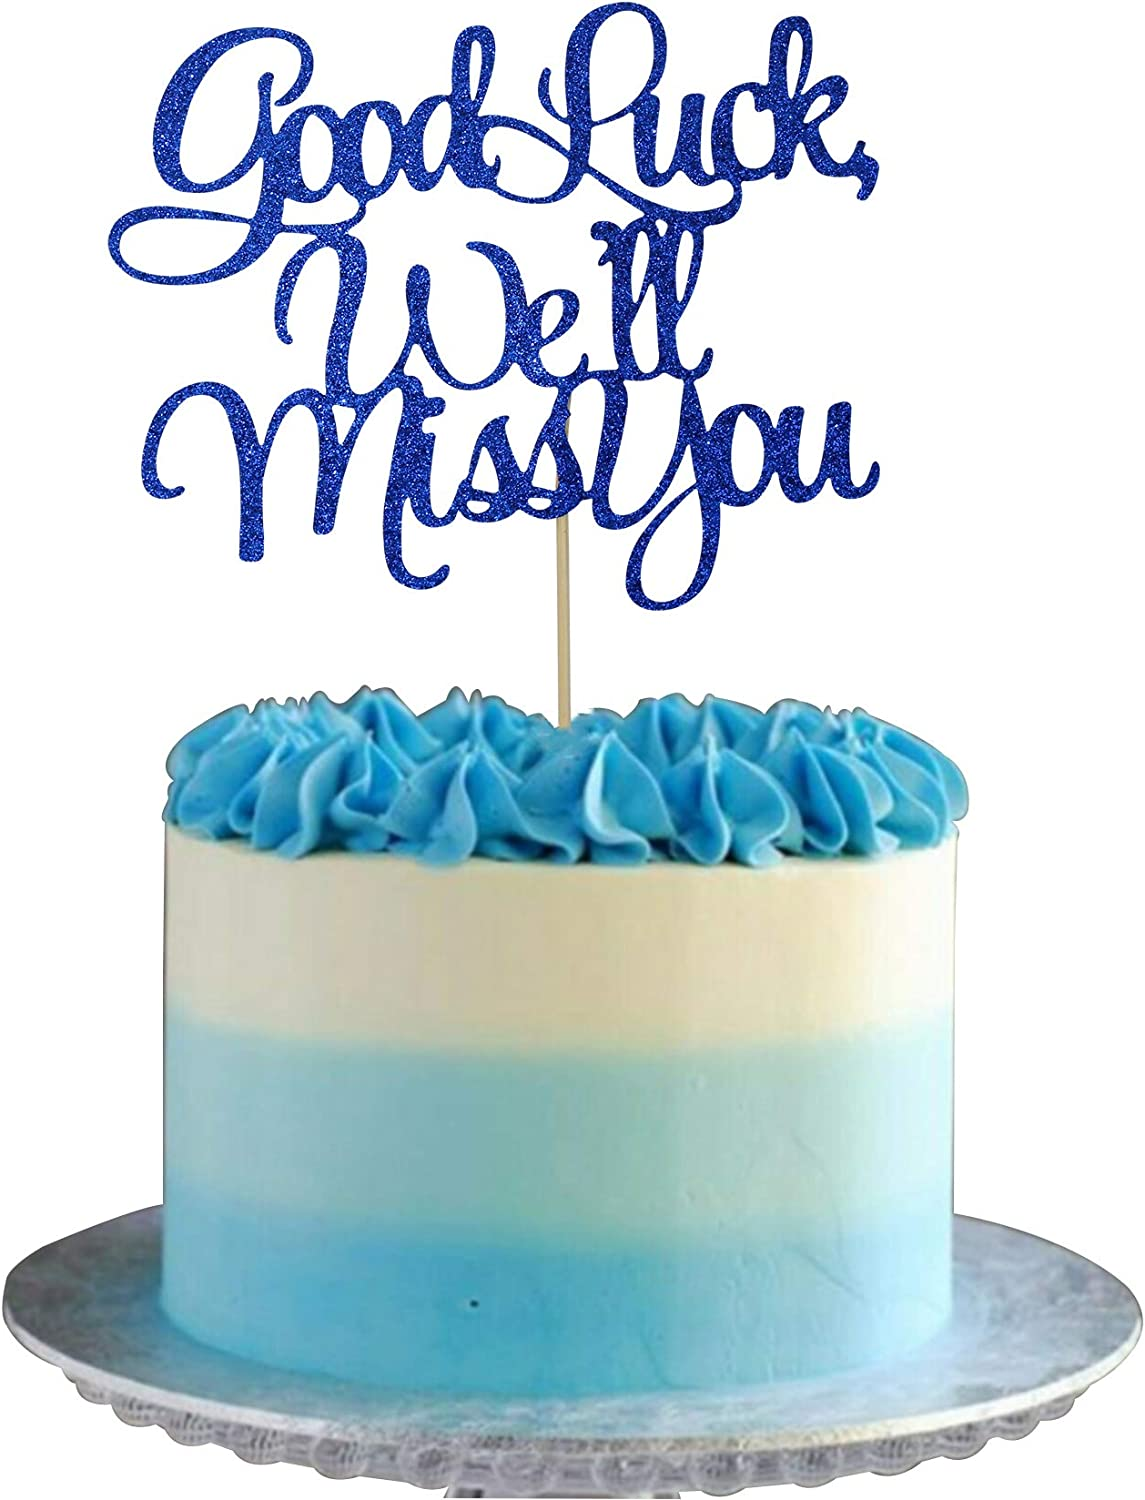 Retirement Cake Topper Blue Well Miss U Farewell Party Decoration Retirement Party Decorations Farewell Cake Topper Starsgarden Blue Good Luck,Well Miss You Cake Topper